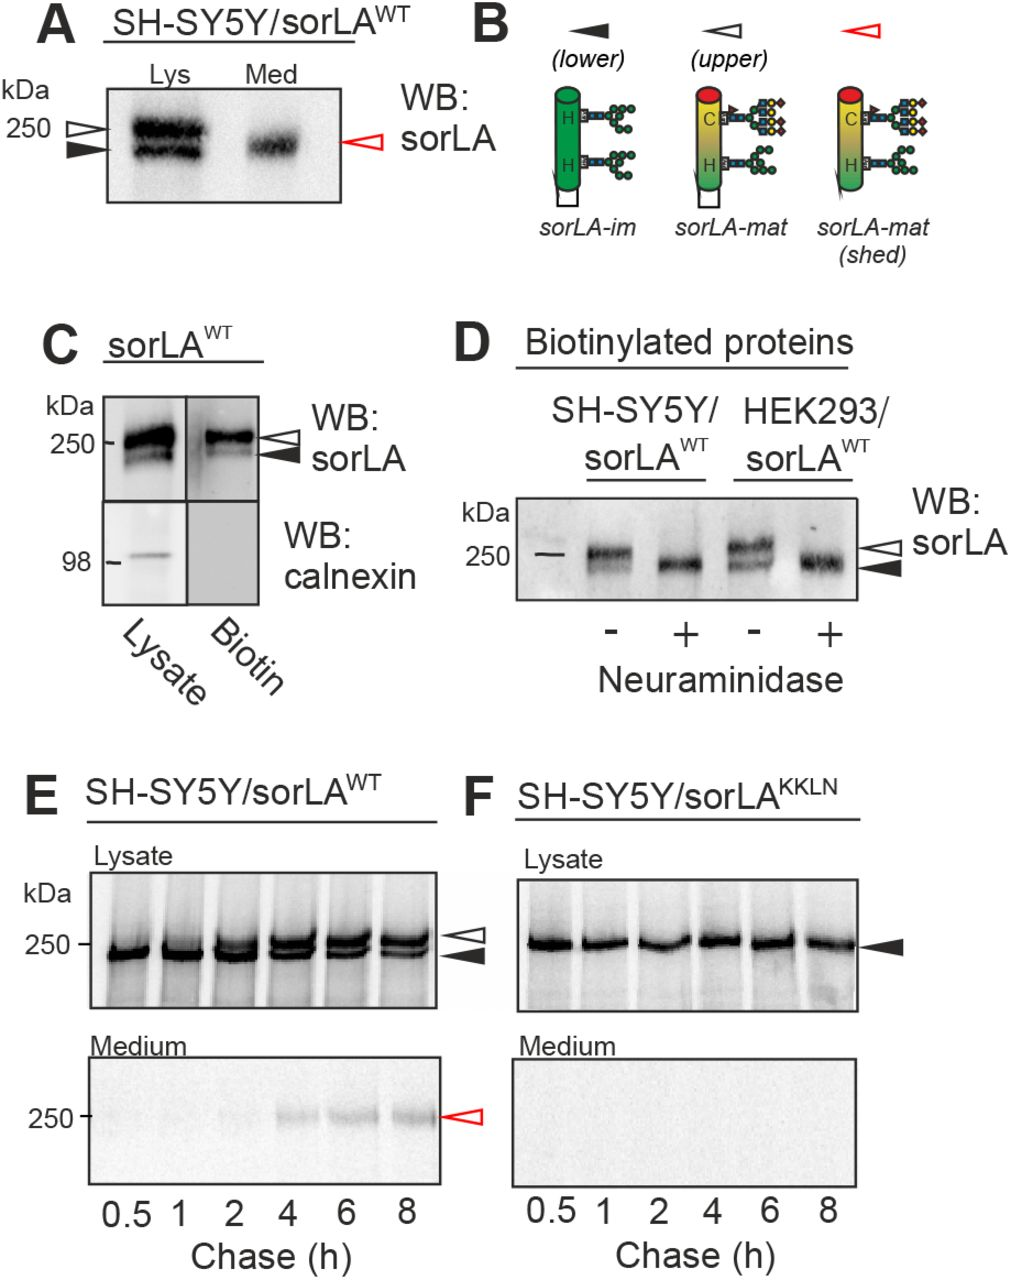 Two sorLA variants found at the cell surface but only one is shed. (A) WB analysis of lysate and conditioned medium from SH-SY5Y cells stably transfected with sorLA WT . (B) Schematic representation of proposed N -glycosylation variants for two molecular species of sorLA (mature: arrow open, and immature: arrow filled) in lysates and one in medium (mature shed: arrow red). The high molecular weight form (upper band; sorLA-mat) carries a mixture of mature complex-type (C) and high-mannose (H) N -glycans, whereas the low molecular weight form (lower band; sorLA-im) only carries immature high-mannose N -glycans. (C) Cell surface proteins from SH-SY5Y cells expressing exogenous sorLA WT were labeled with biotin and precipitated using Streptavidin coated beads. The biotinylated proteins together with total lysates were analyzed using SDS-PAGE and WB for sorLA and calnexin (ER marker). (D) Eluates of biotinylated cell surface proteins from SH-SY5Y and HEK293 cells expressing exogenous sorLA WT treated (+) or not (-) with neuraminidase after precipitation using Streptavidin coated beads as indicated. (E, F) SH-SY5Y cells expressing either sorLA WT or sorLA KKLN were subjected to a [ 35 S] pulse-chase protocol in order to follow the maturation over time. Cells were harvested at the indicated time points, and sorLA protein from lysate and medium was immunoprecipitated, separated by SDS-PAGE analysis, and visualized by radiofluorography. Signals in WB for lysates for sorLA-mat and sorLA-im are indicated with white and black arrowheads, and for shed sorLA in medium with a red arrowhead, respectively.